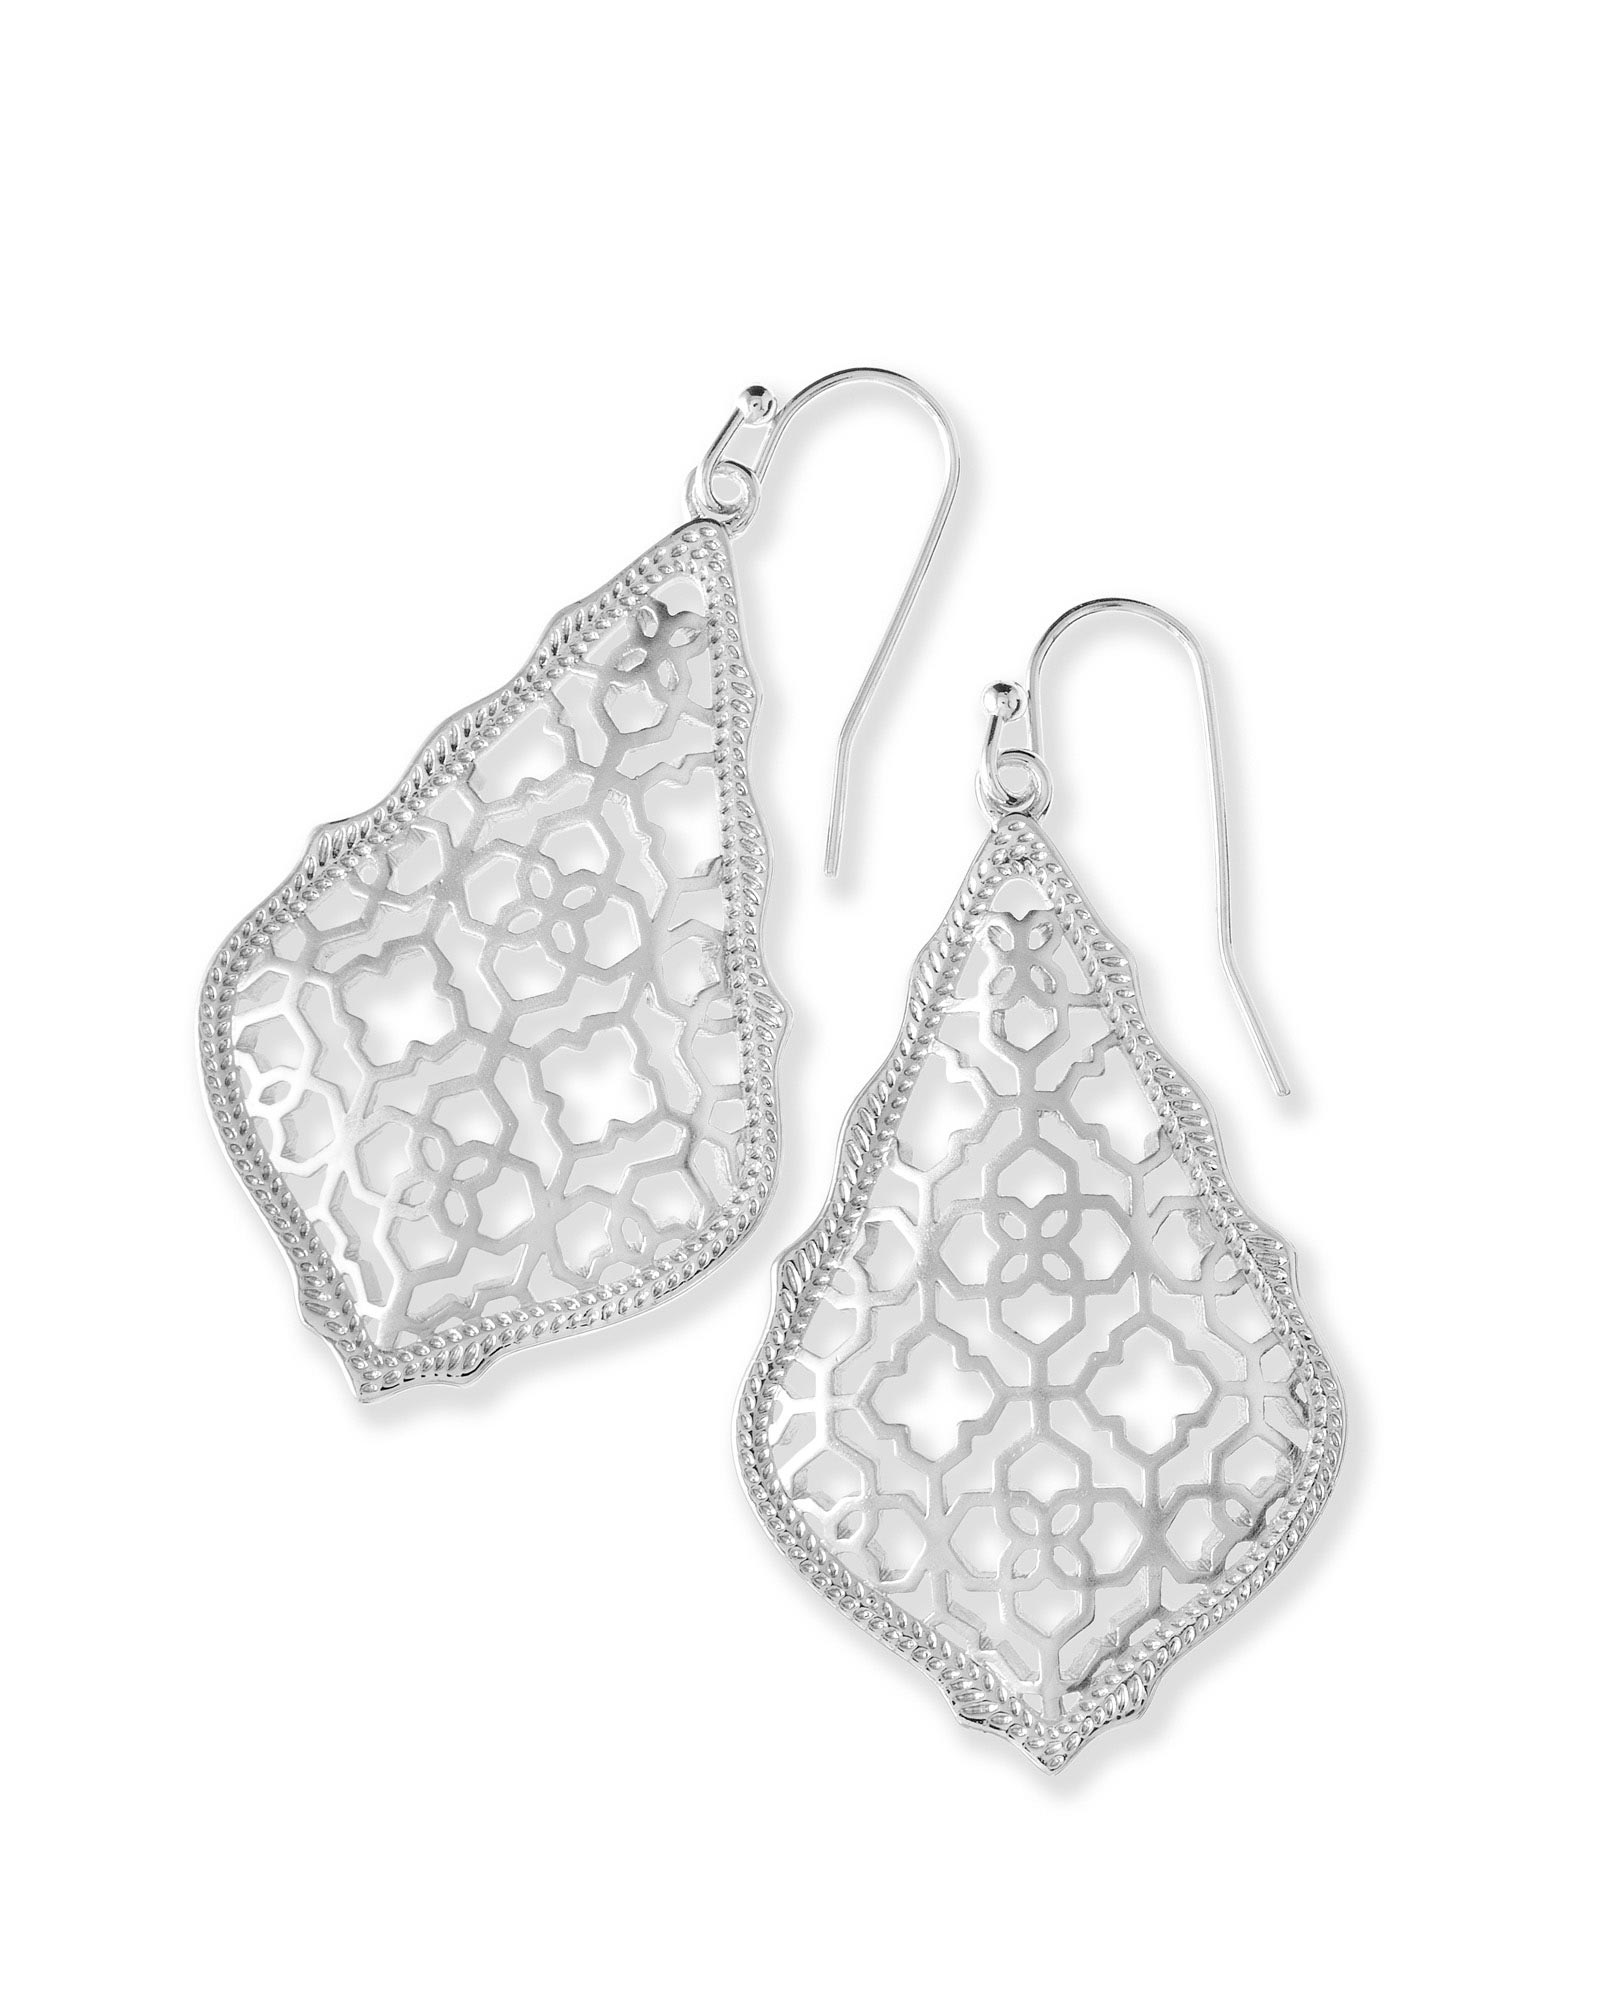 Ad Silver Drop Earrings In Filigree Mix